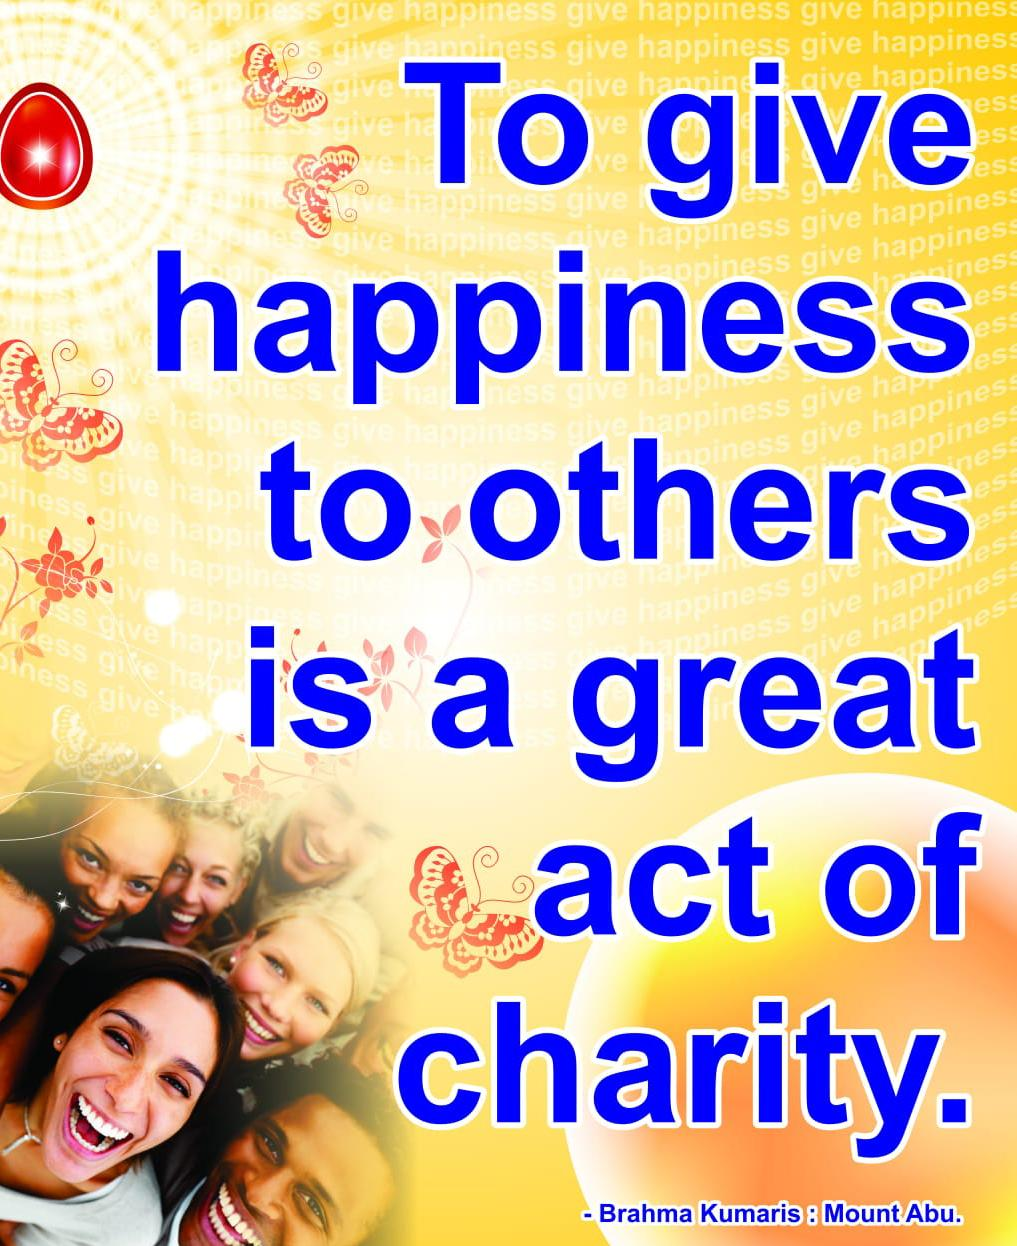 Spiritually Serving Others | The Joy of Giving quotes